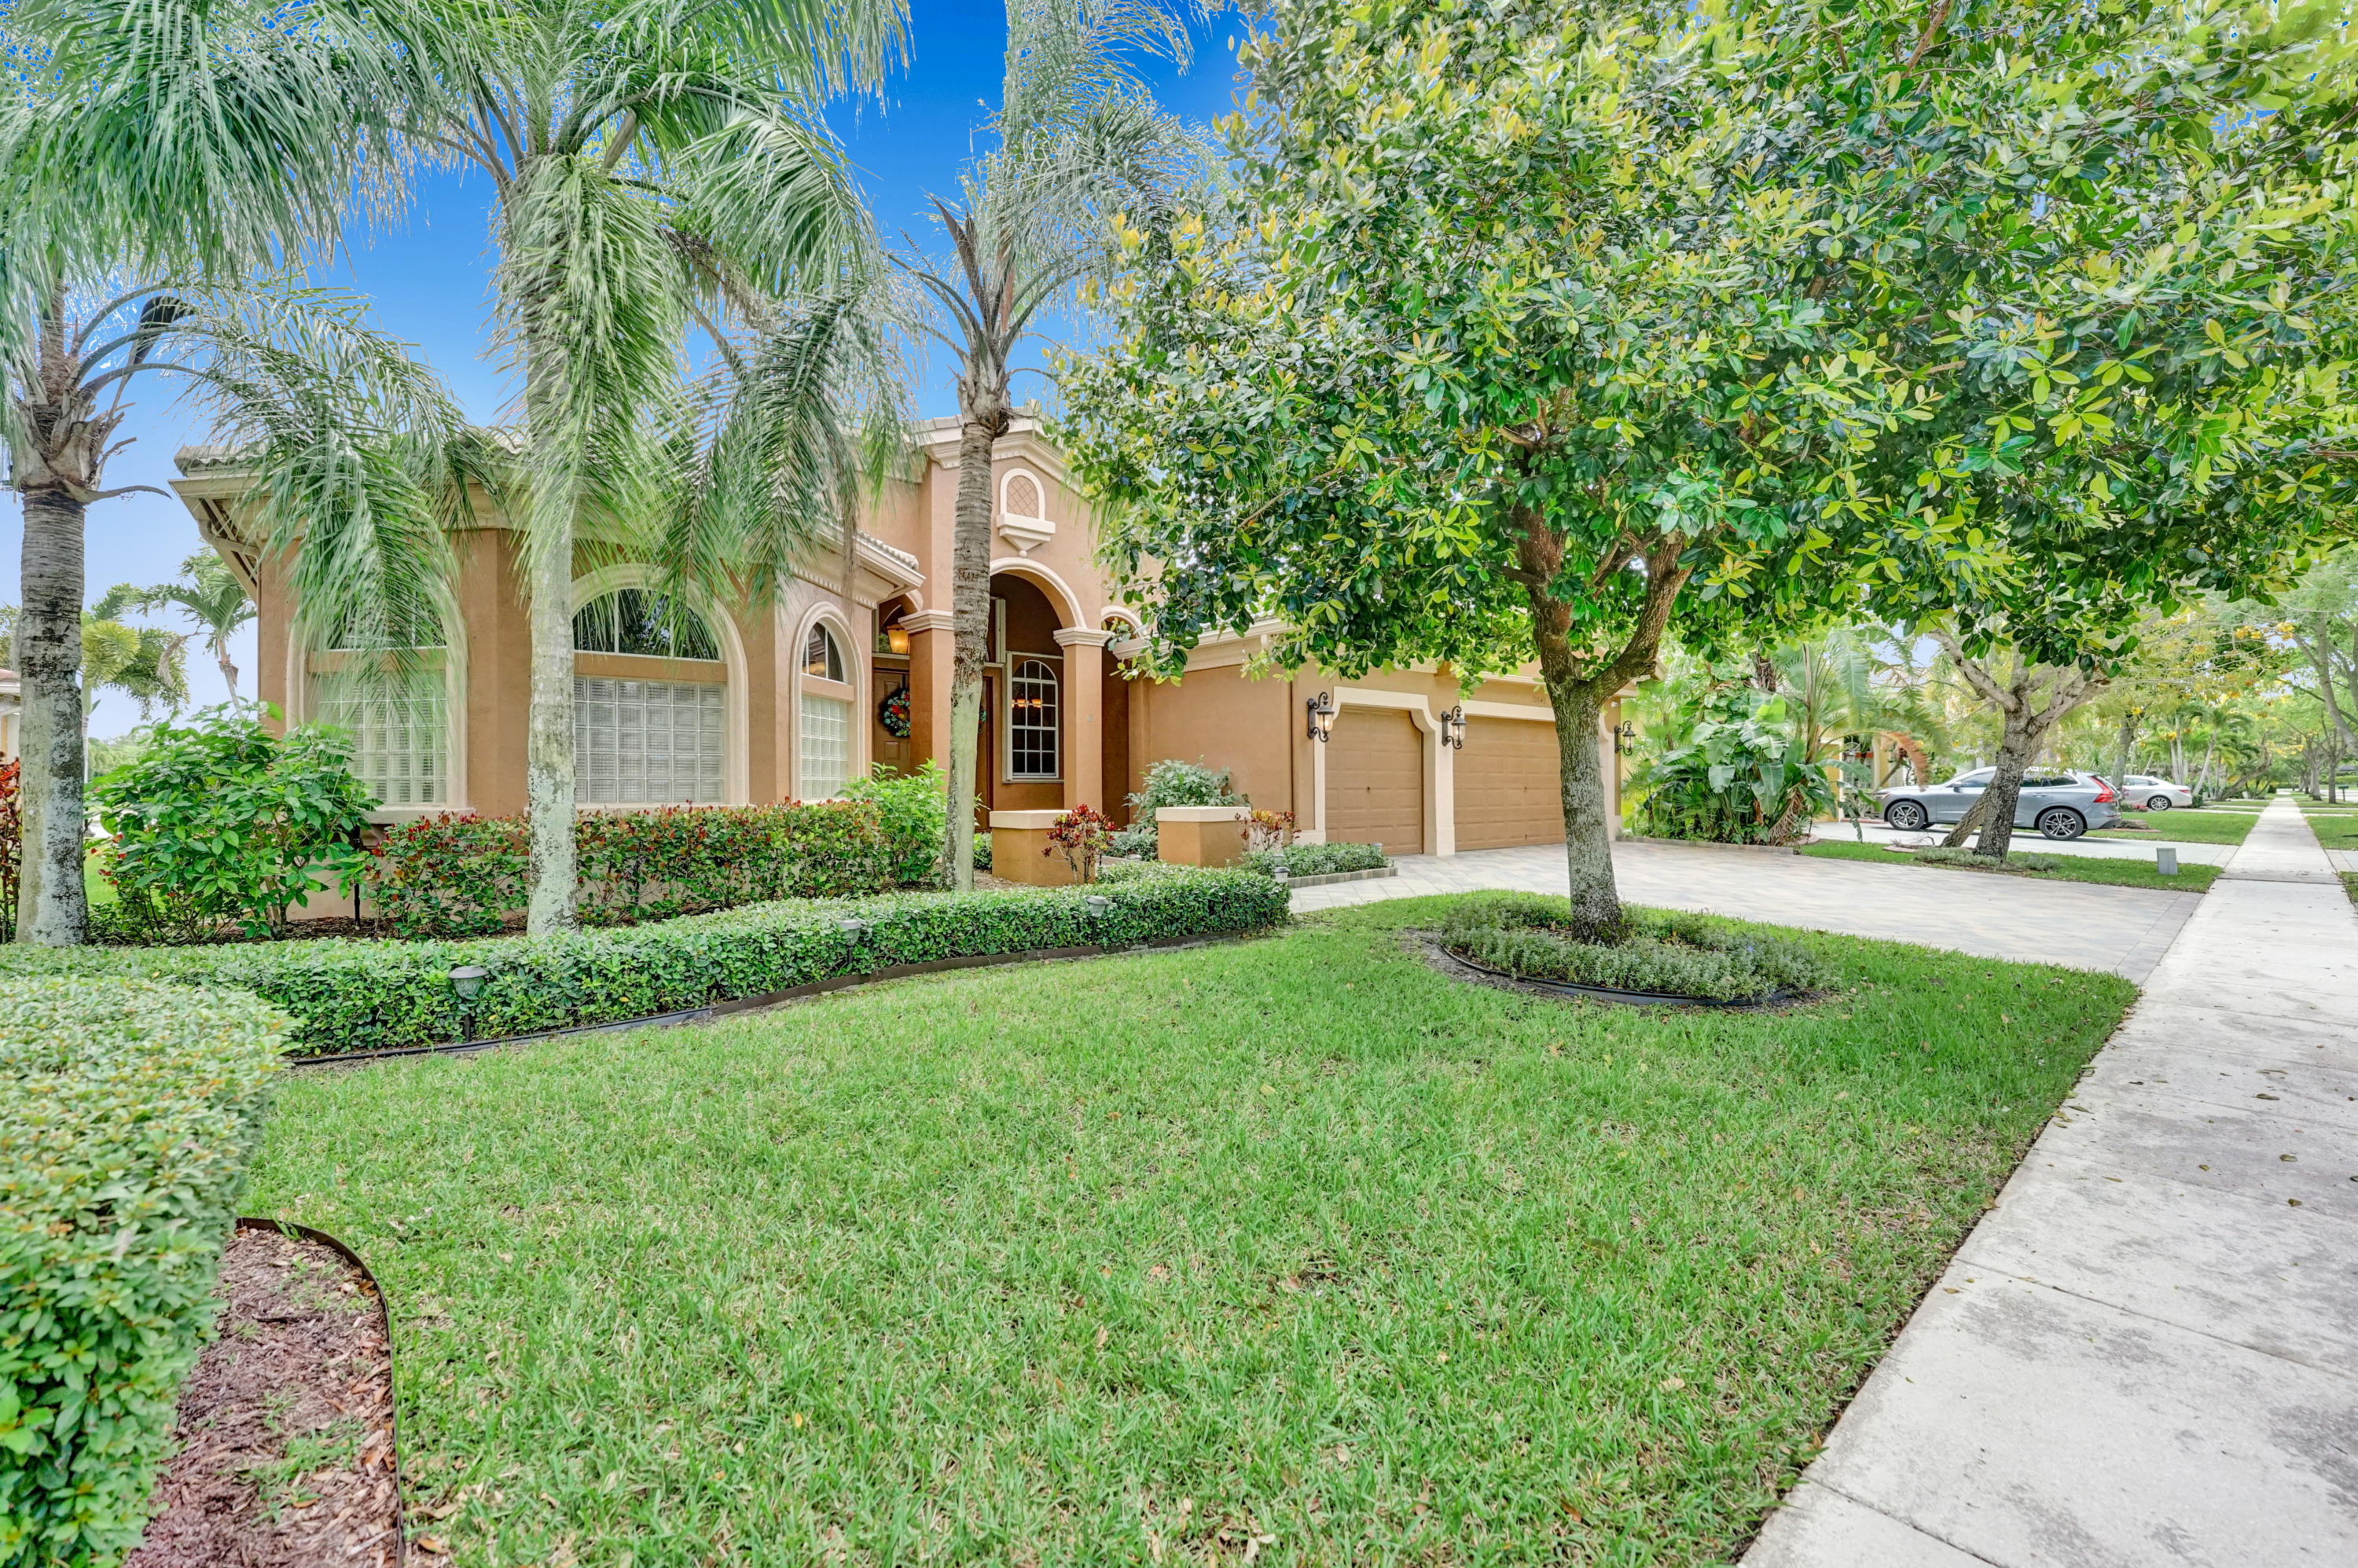 Home for sale in Countryside Estates Lake Worth Florida